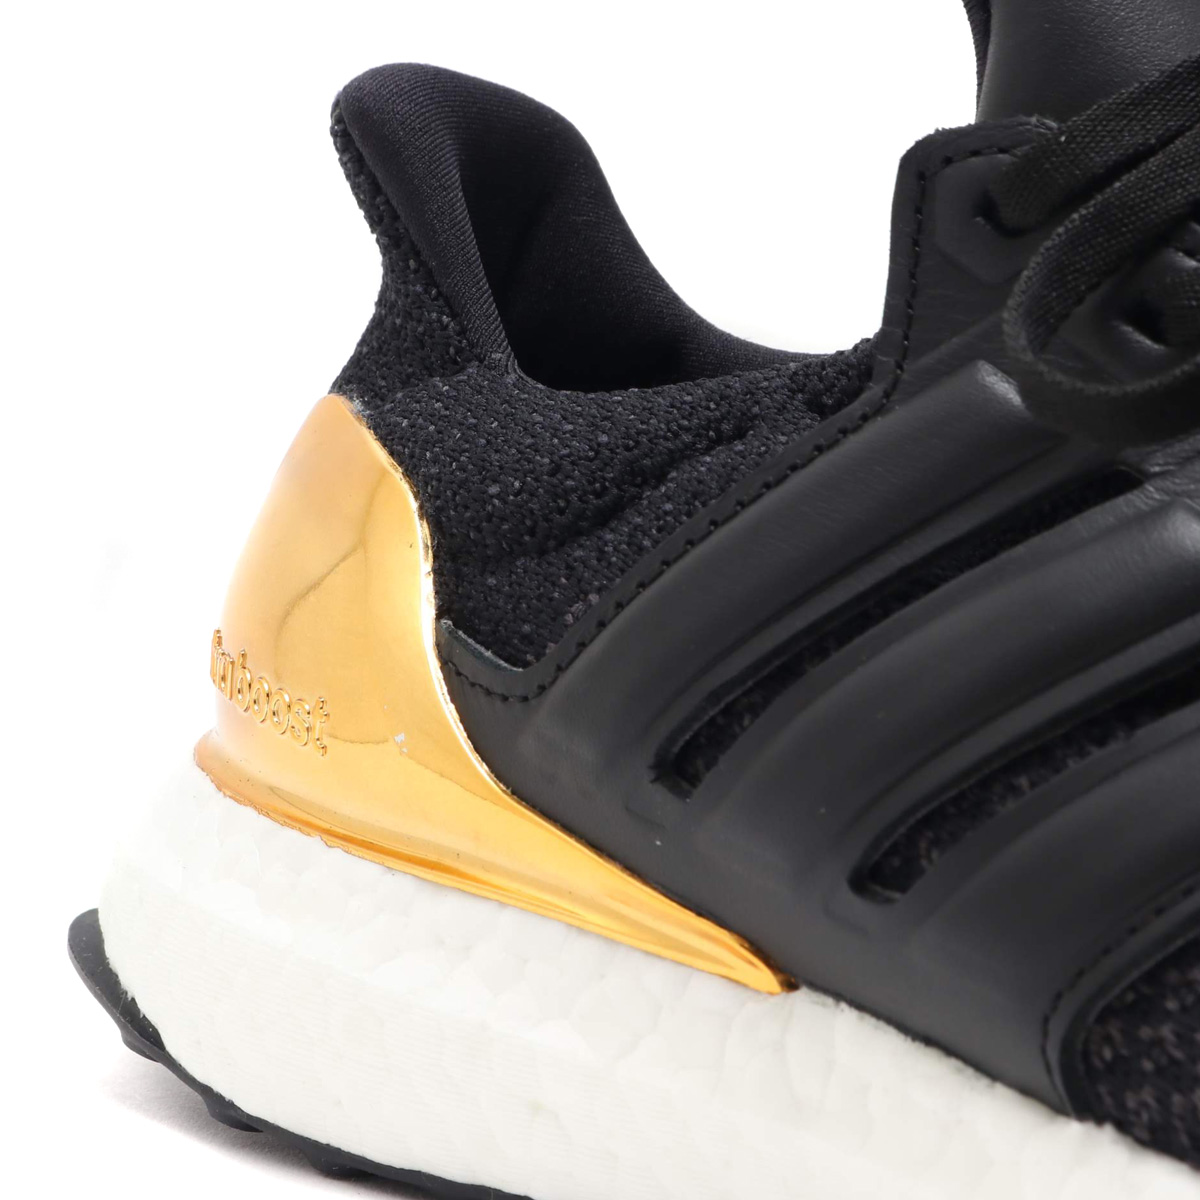 8f6d70beeef6e adidas ultra boost Ltd Celeb. (Adidas ultra boost LTD celebrity) CORE BLACK CORE  BLACK GOLD MEDAL 18FW-S